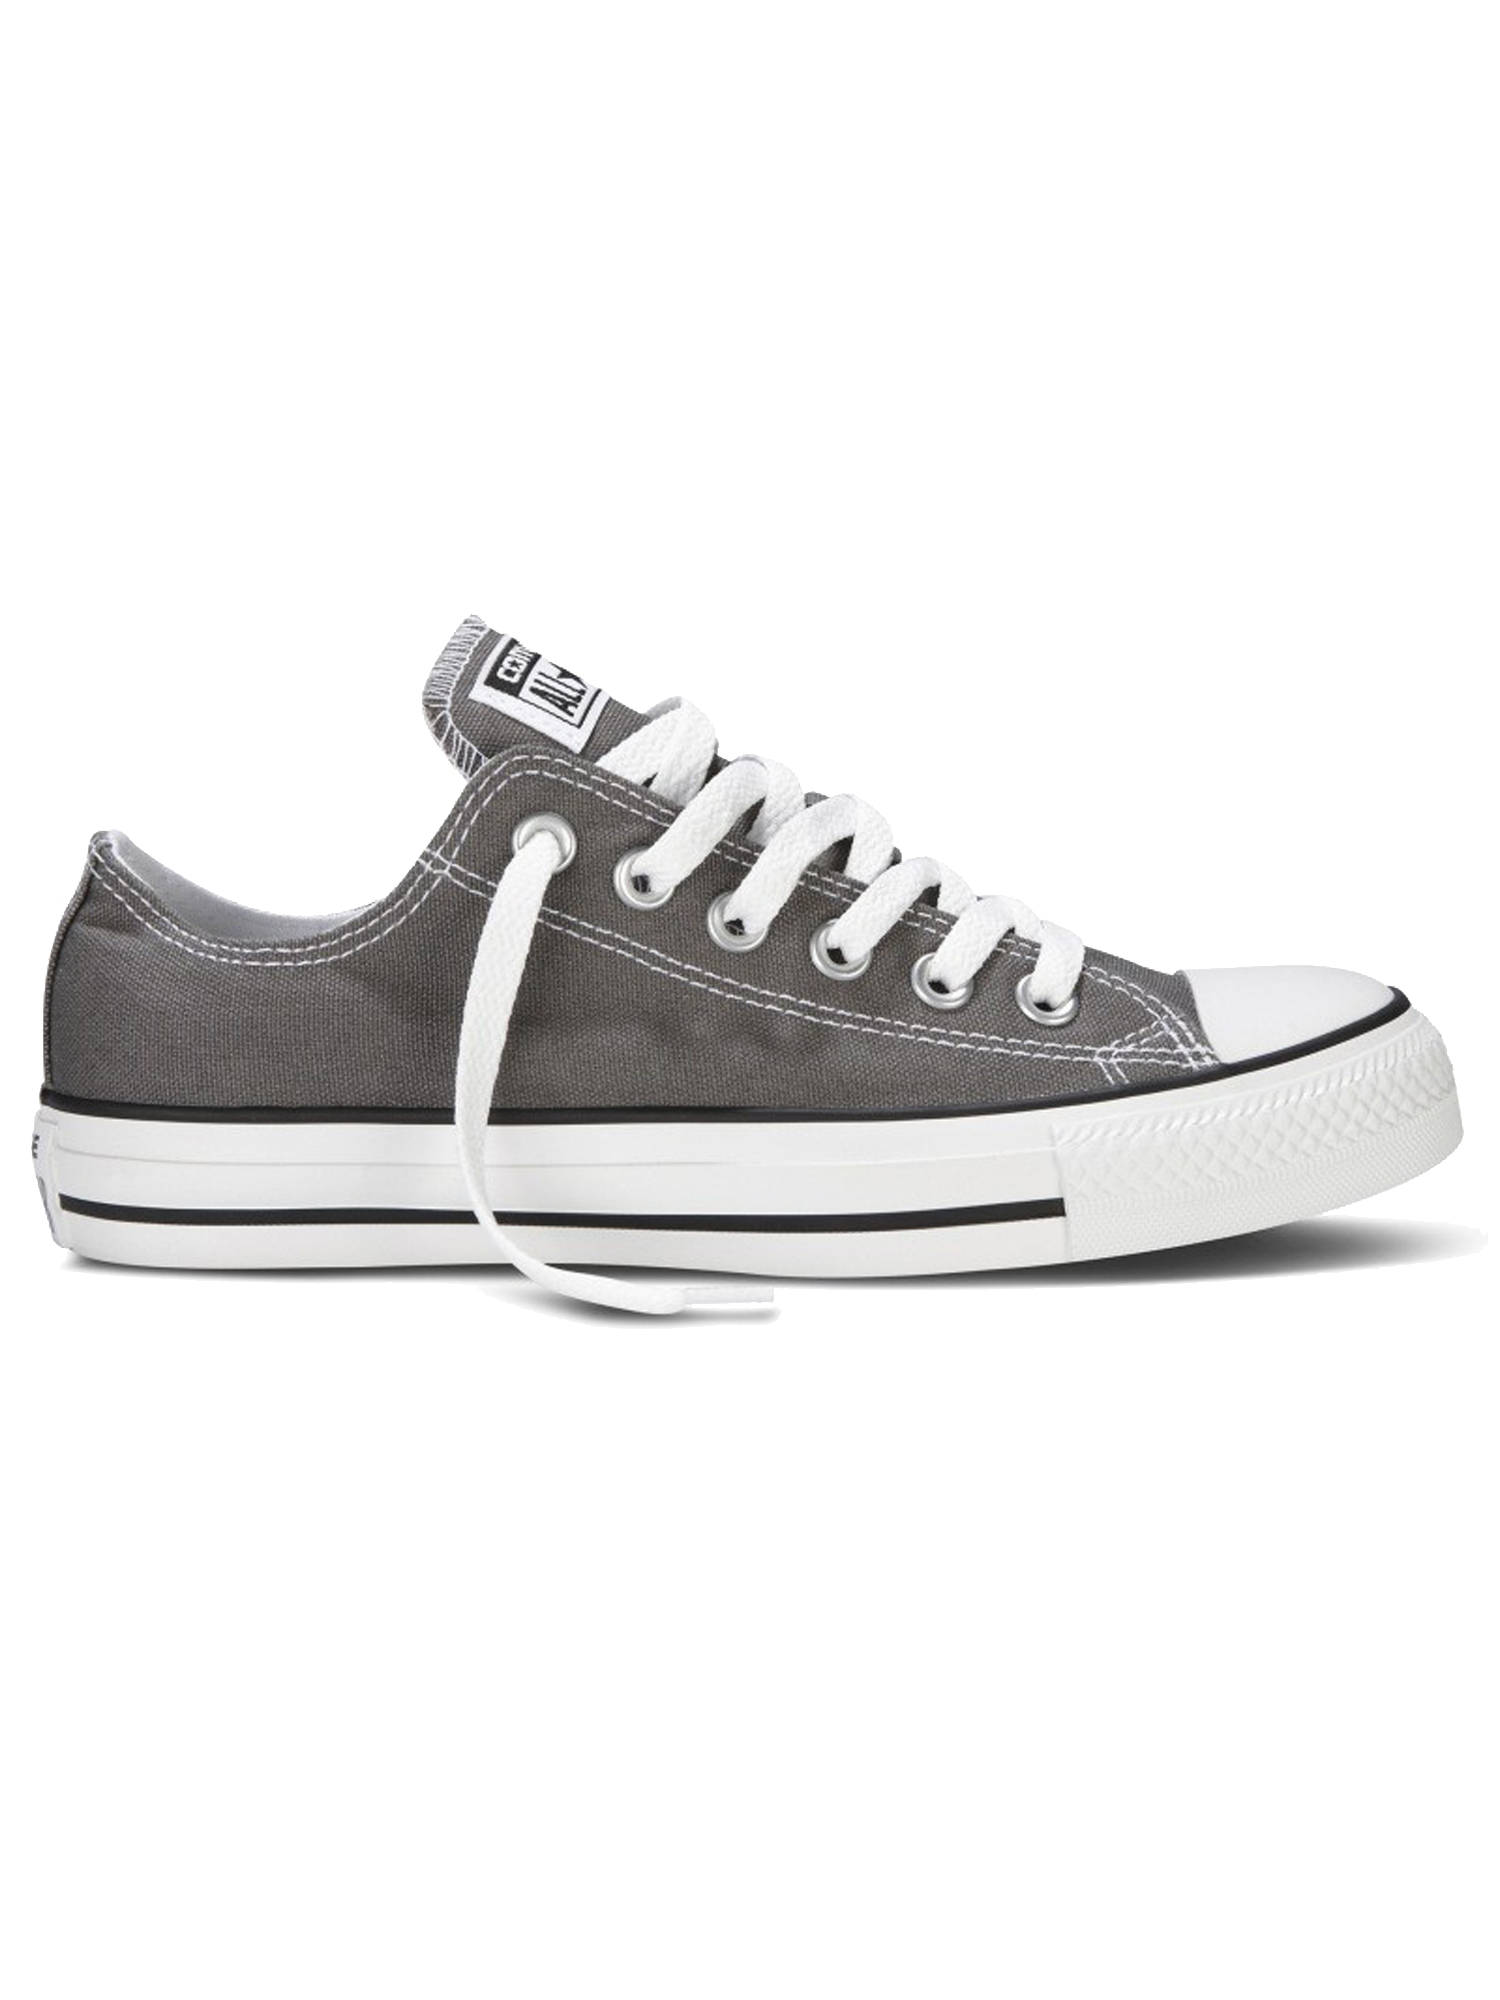 Converse Damen Schuhe All Star Ox Grau 1J794C Sneakers Chucks Gr. 36 |  starlabels outdoor lifestyle leder